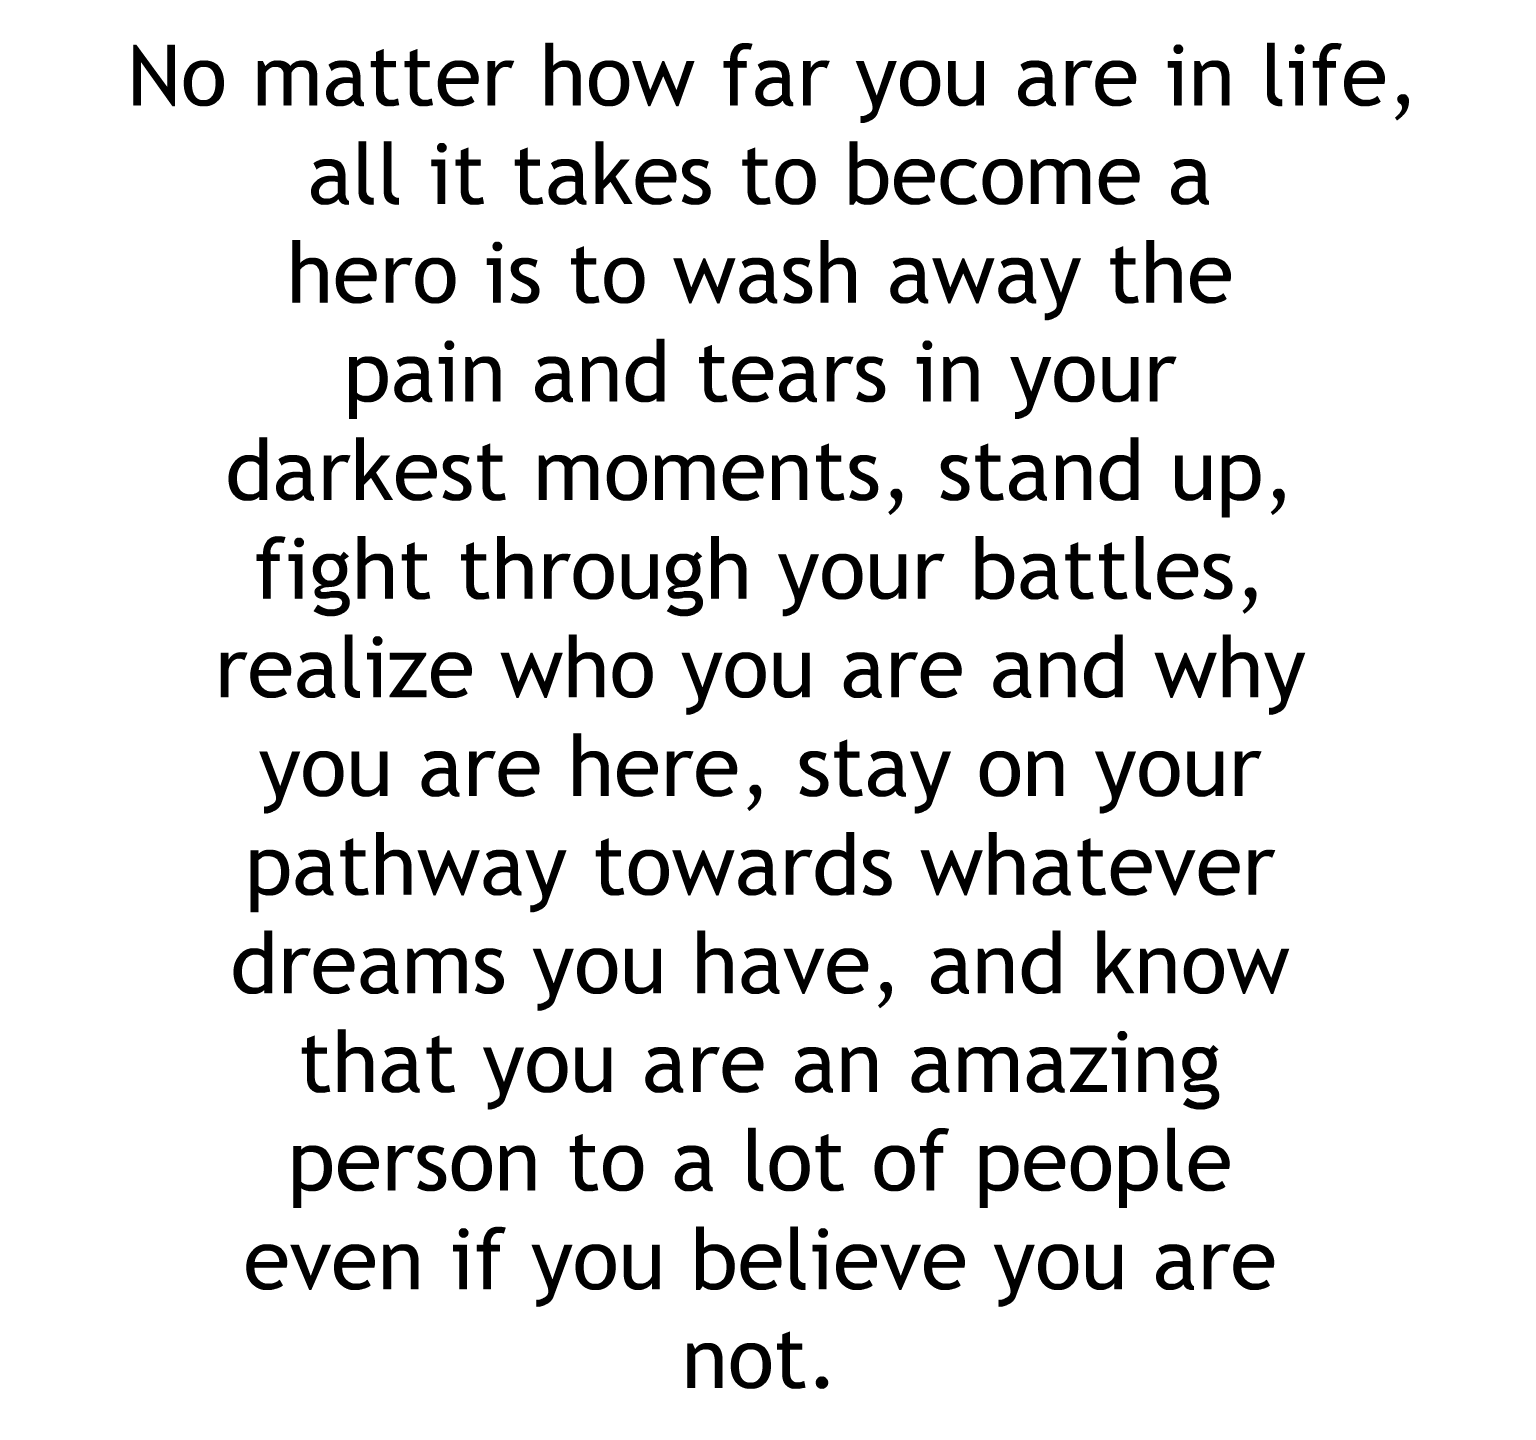 [image] I wrote this a year ago.